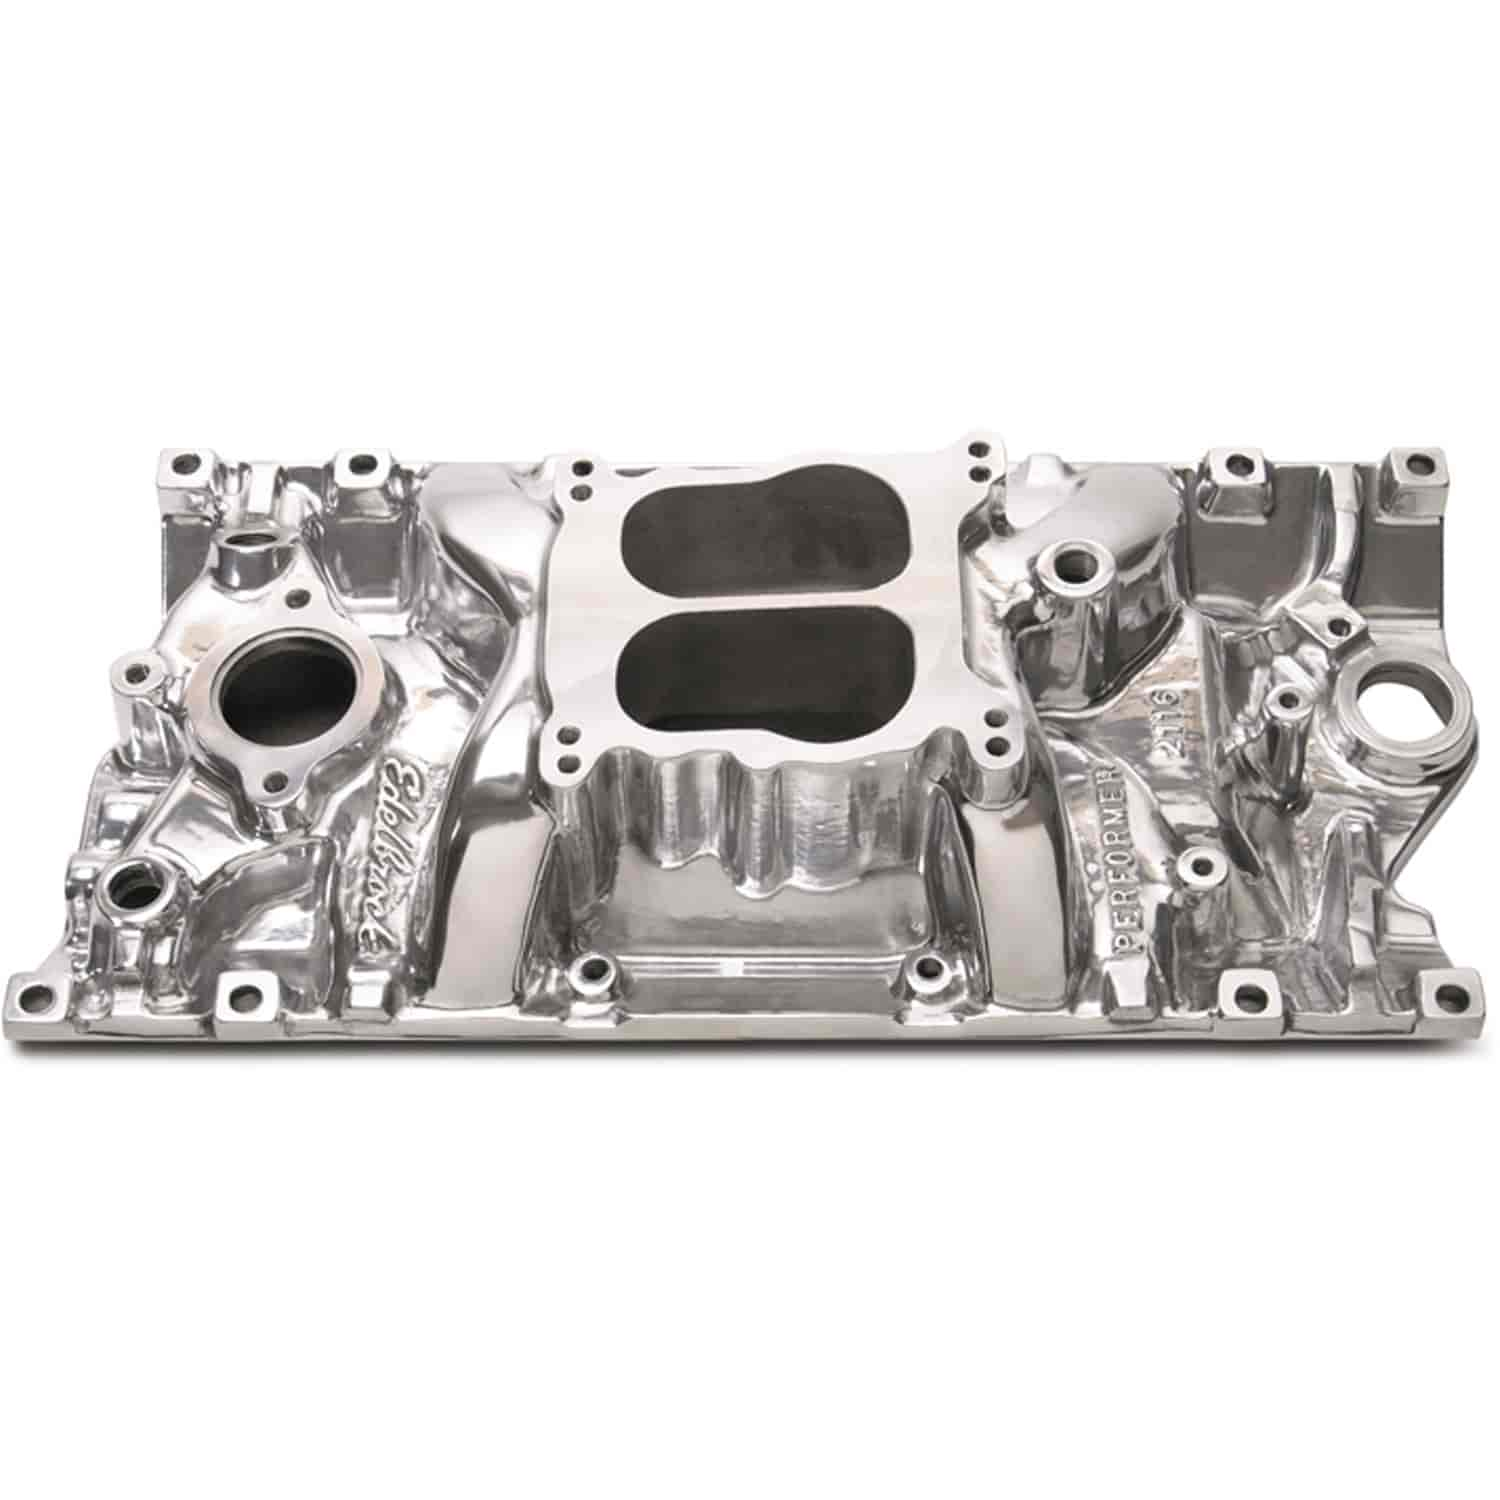 Edelbrock 21161 - Edelbrock Performer Intake Manifolds for Chevy